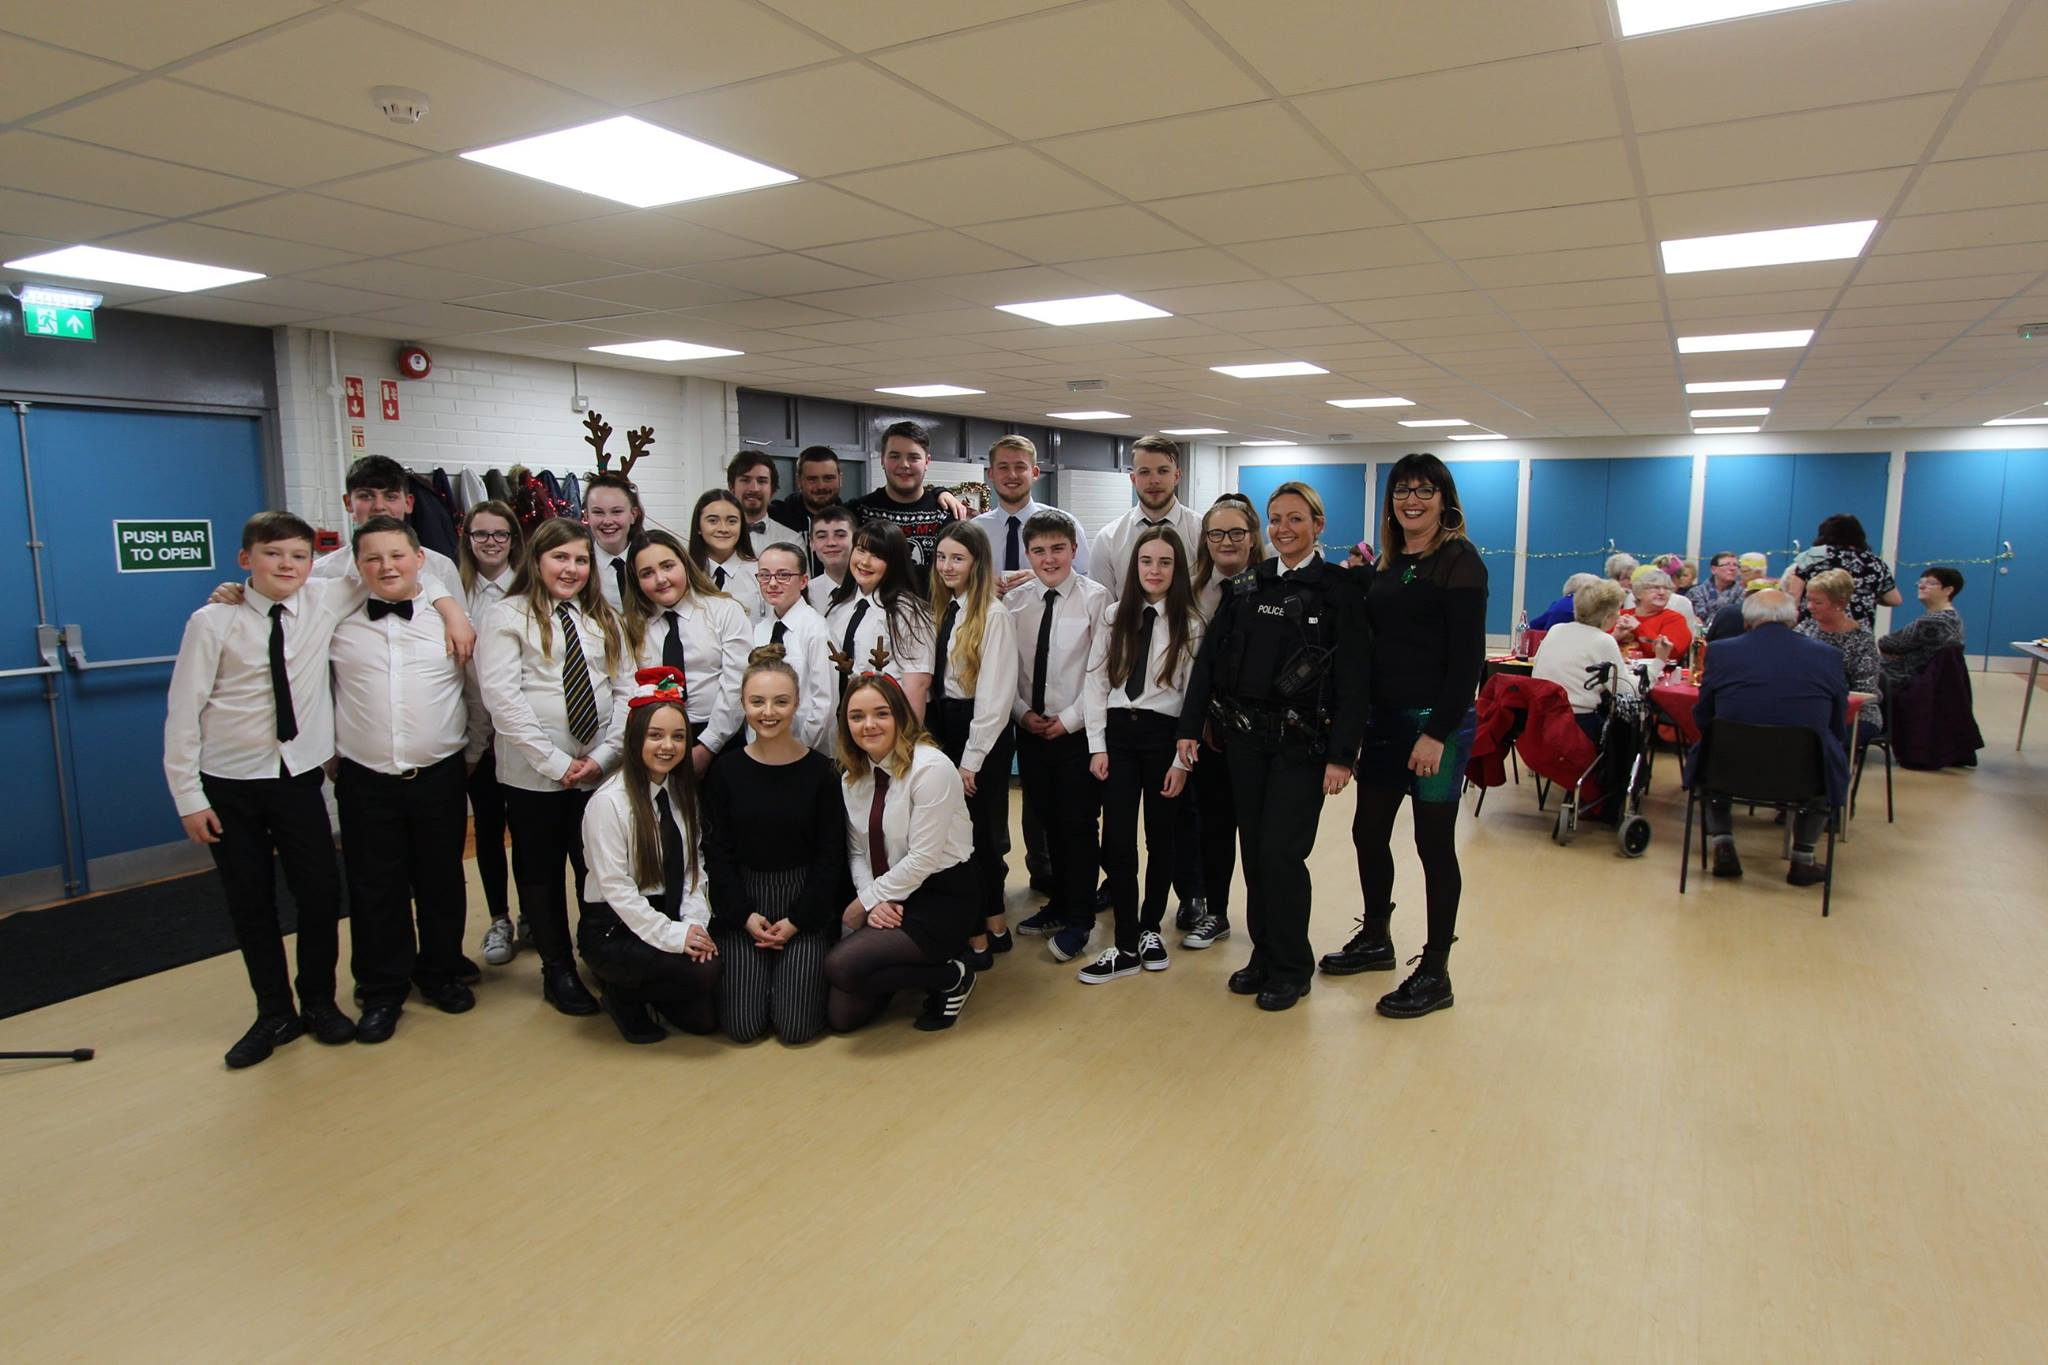 December  - Once again our Braniel group were suited and booted for our annual intergenerational Christmas dinner! This proved a hit again with those who attended. Same time next year?